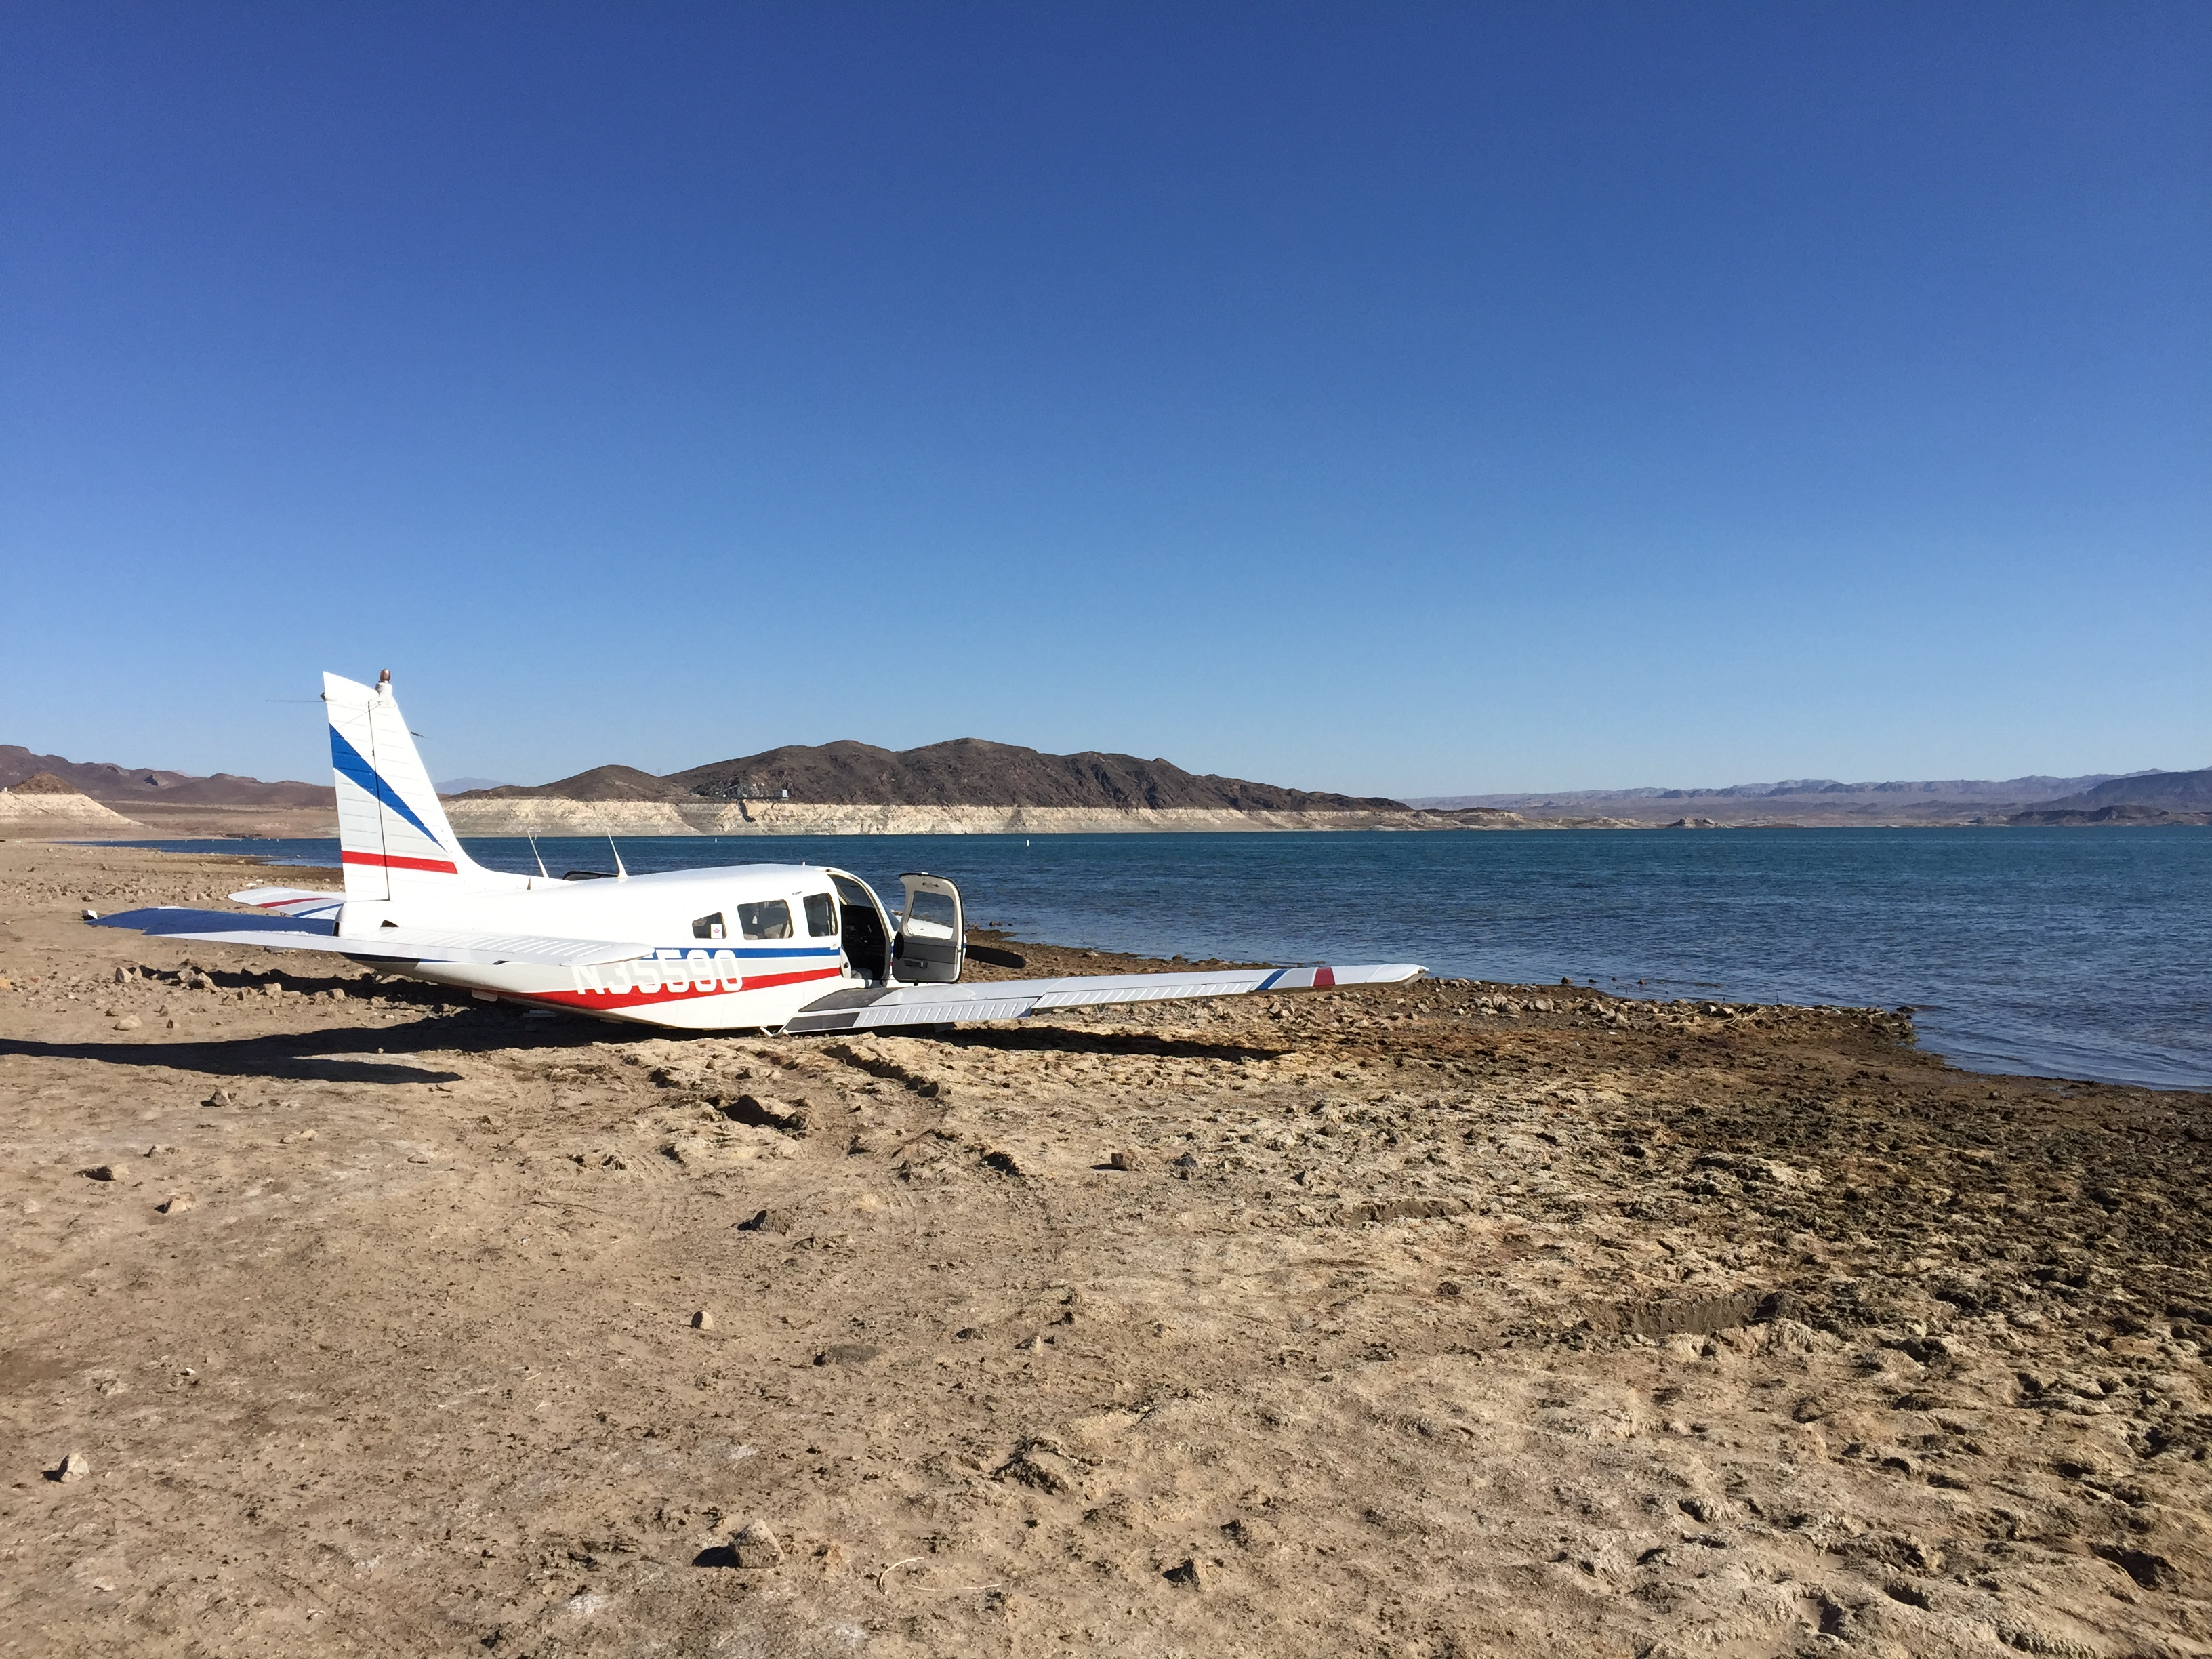 A 1979 Piper PA-32R-301 rests at the water's edge of Lake Mead after a pilot made an emergency landing while flying from North Las Vegas, Nevada, to El Paso, Texas, June 22.